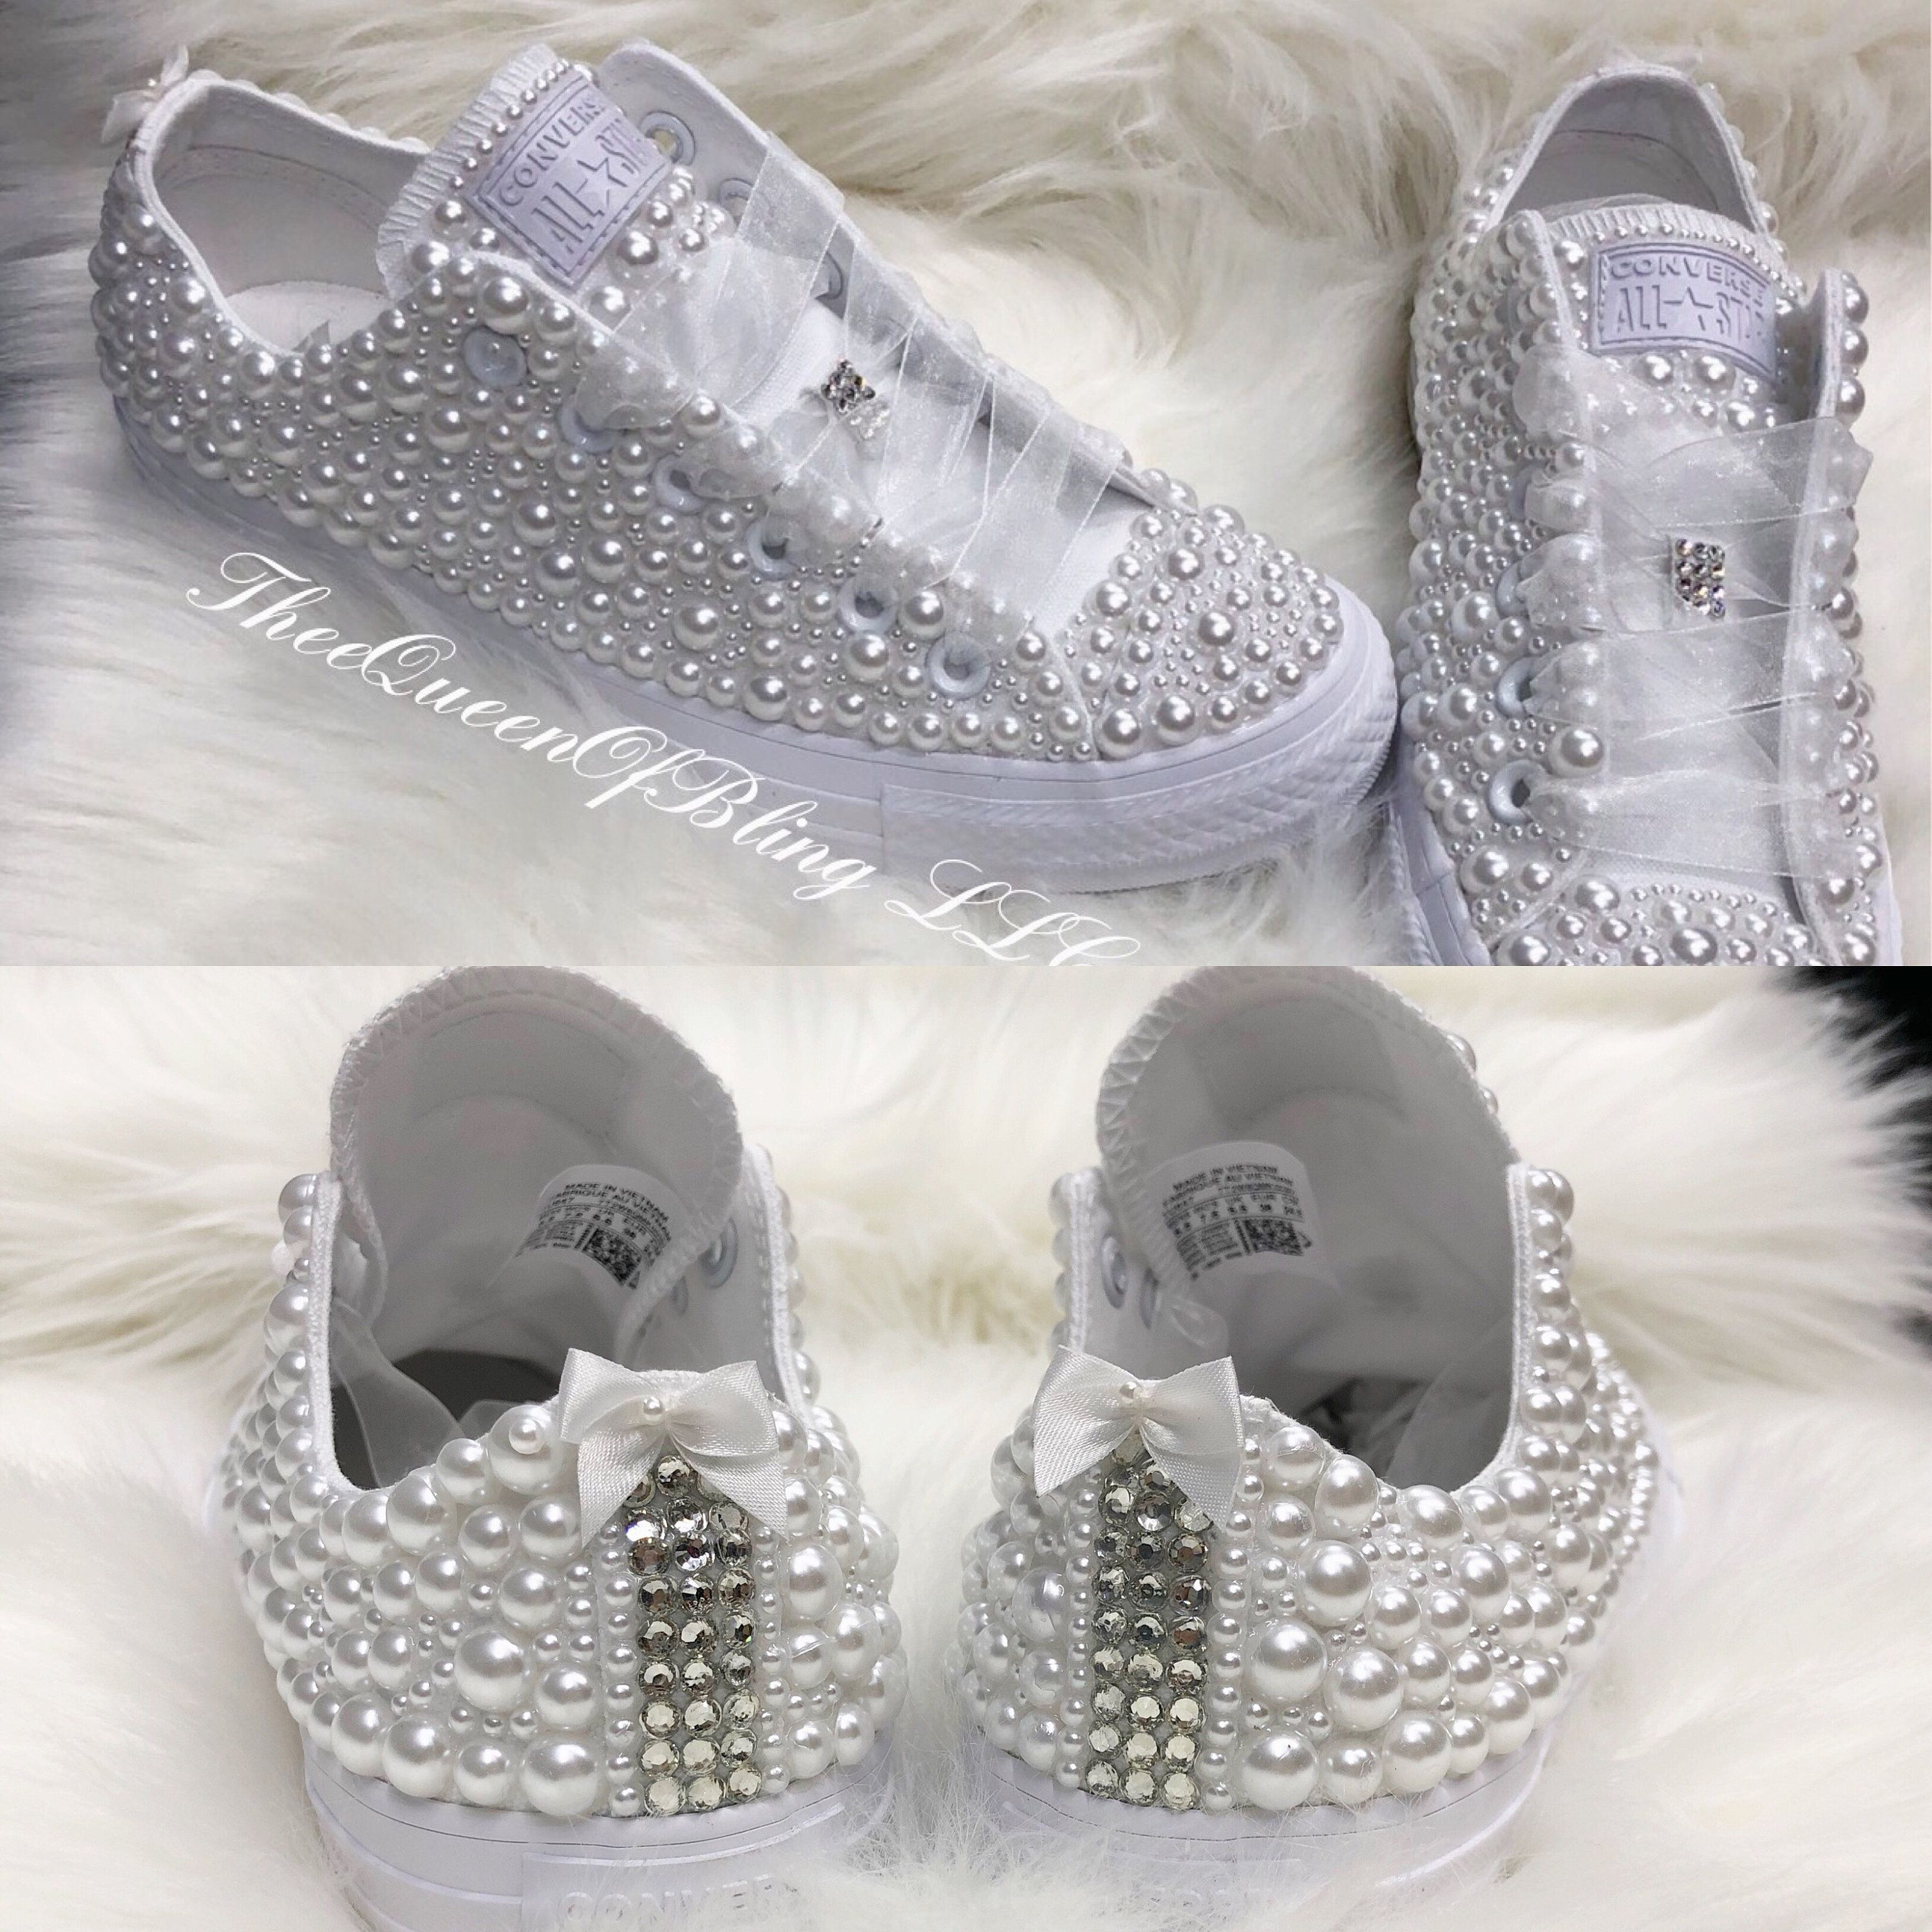 Converse wedding shoes, Bedazzled shoes